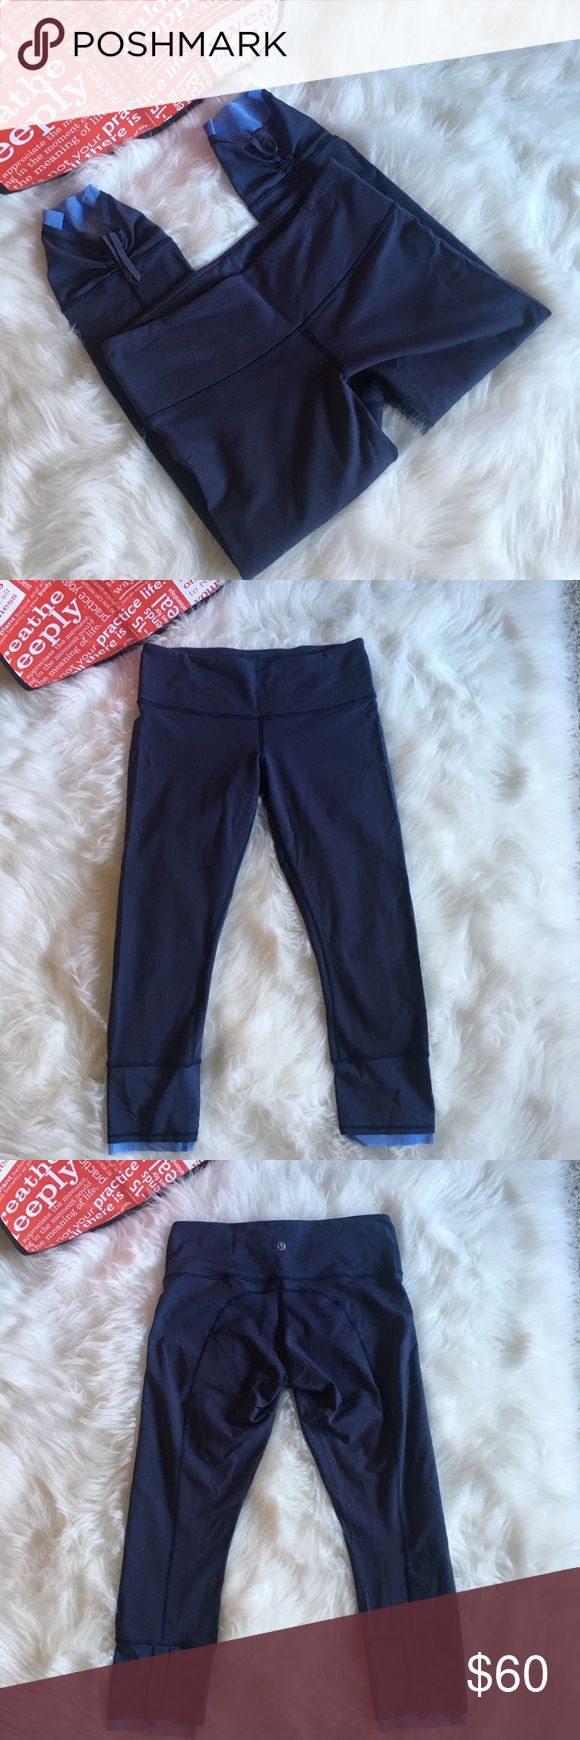 lululemon leggings with mesh detail lululemon blue leggings with light blue mesh detail at bottom.  Size 8.  Regular rise.  The bottom can be scrunched to show mesh detail.  7/8 length.  Overall good condition.  Some very light pilling. lululemon athletica Pants Leggings